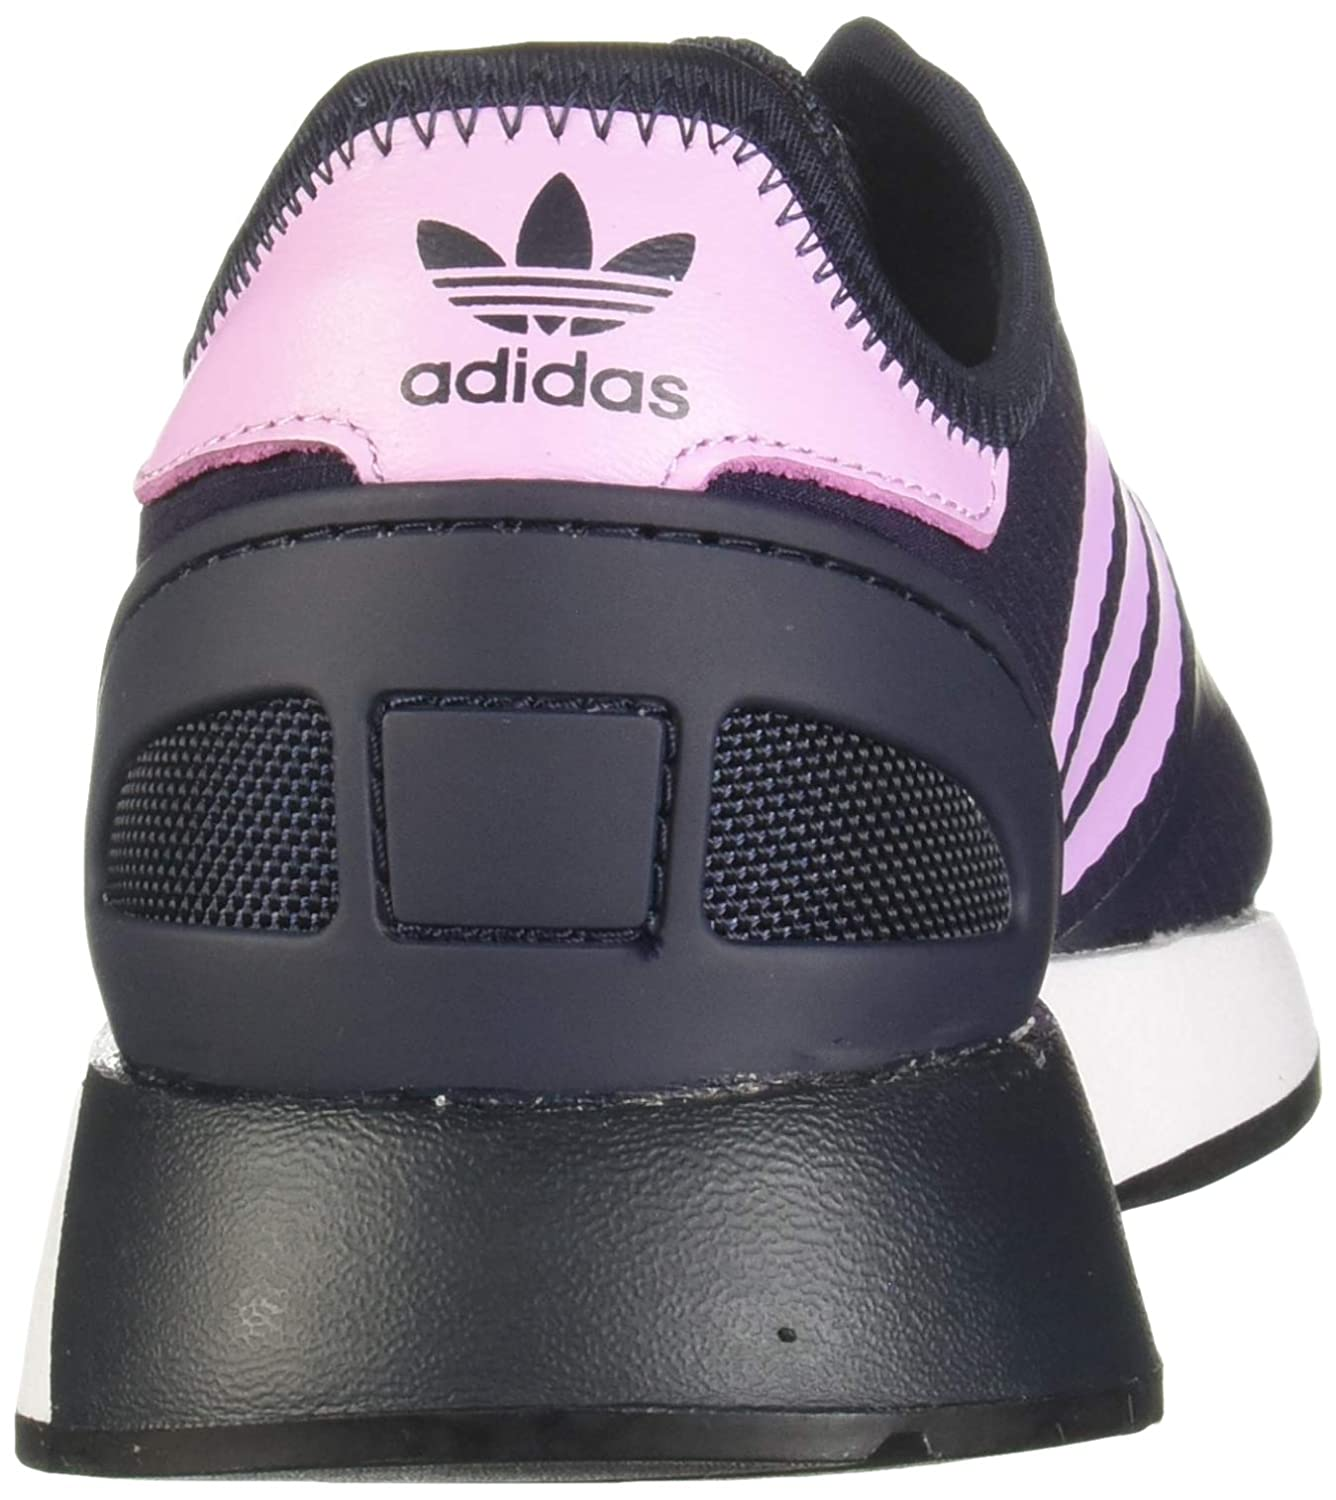 adidas Womenss N-5923 W Fitness Shoes